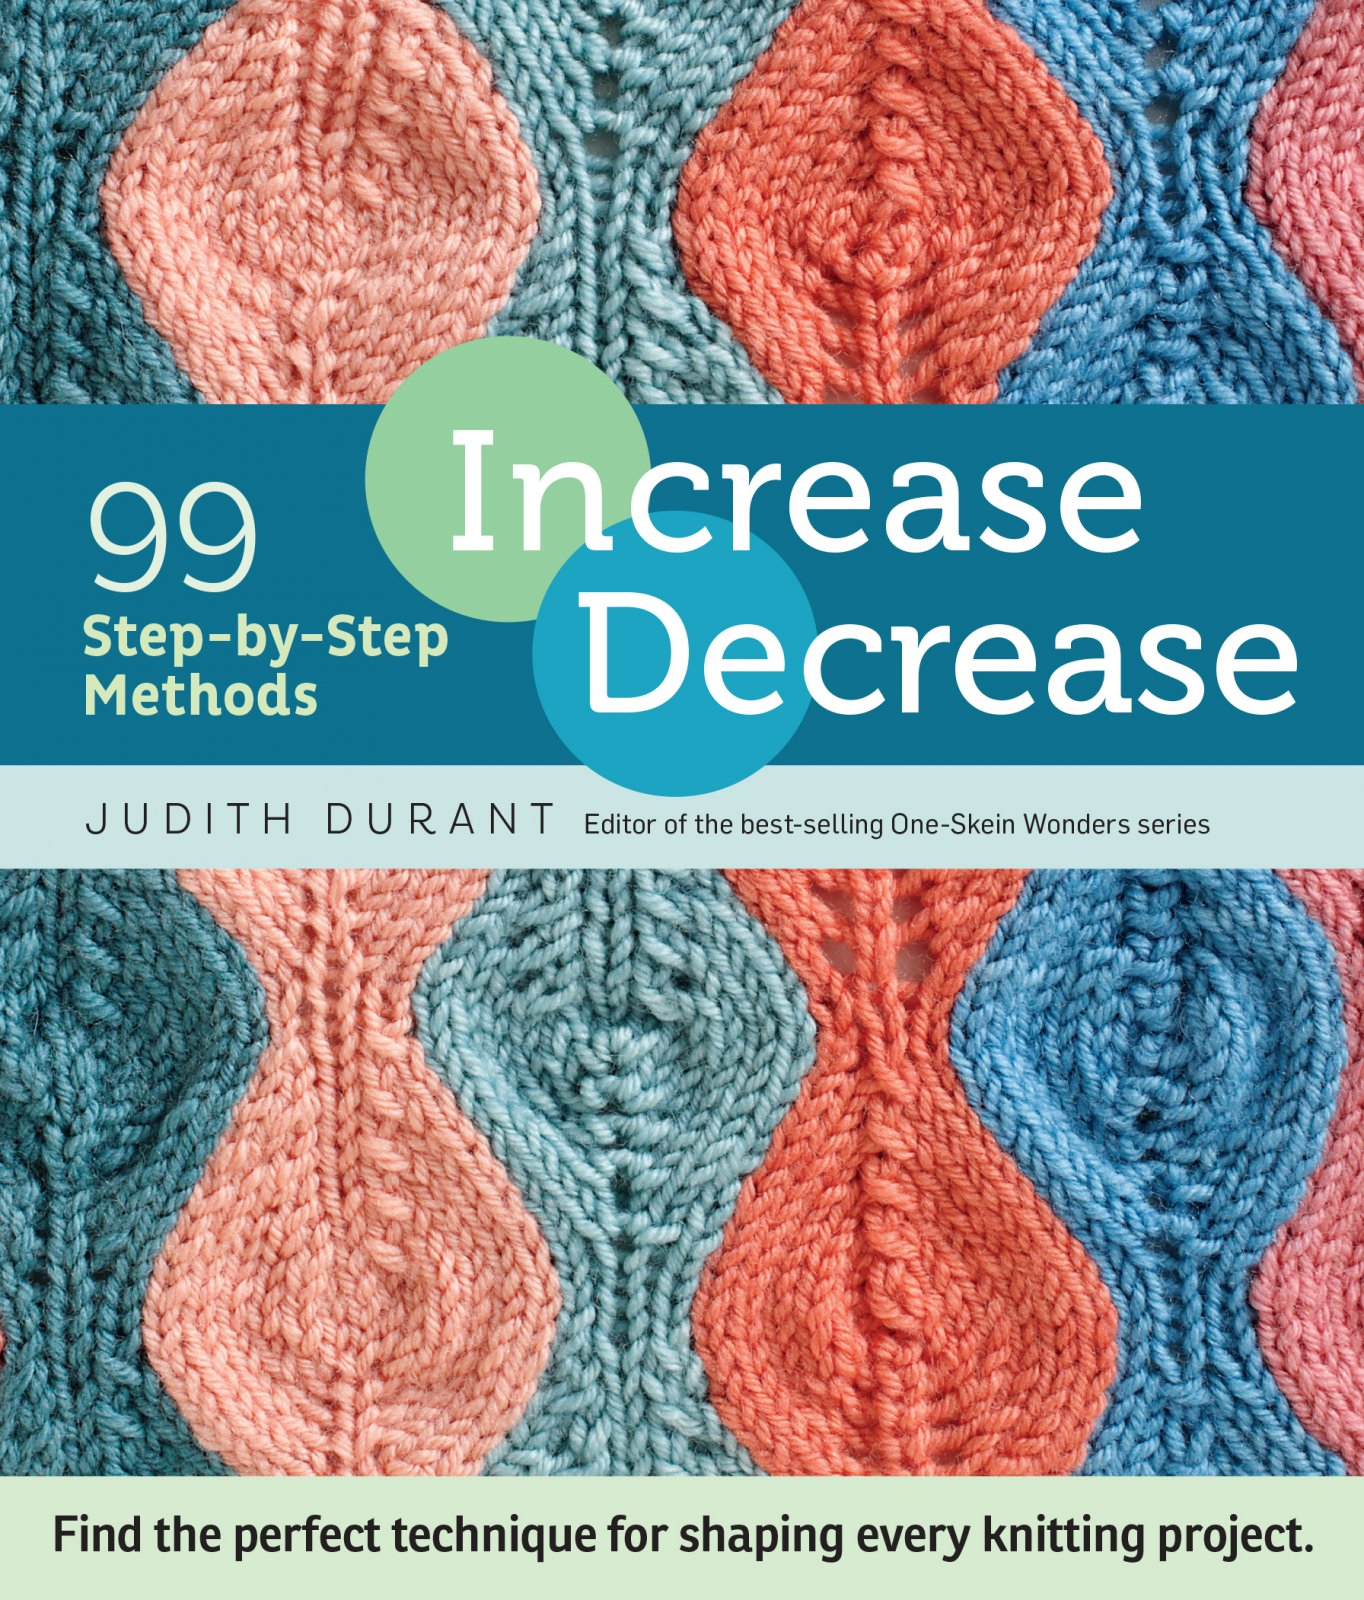 Increase/Decrease: 99 Step-by-Step Methods